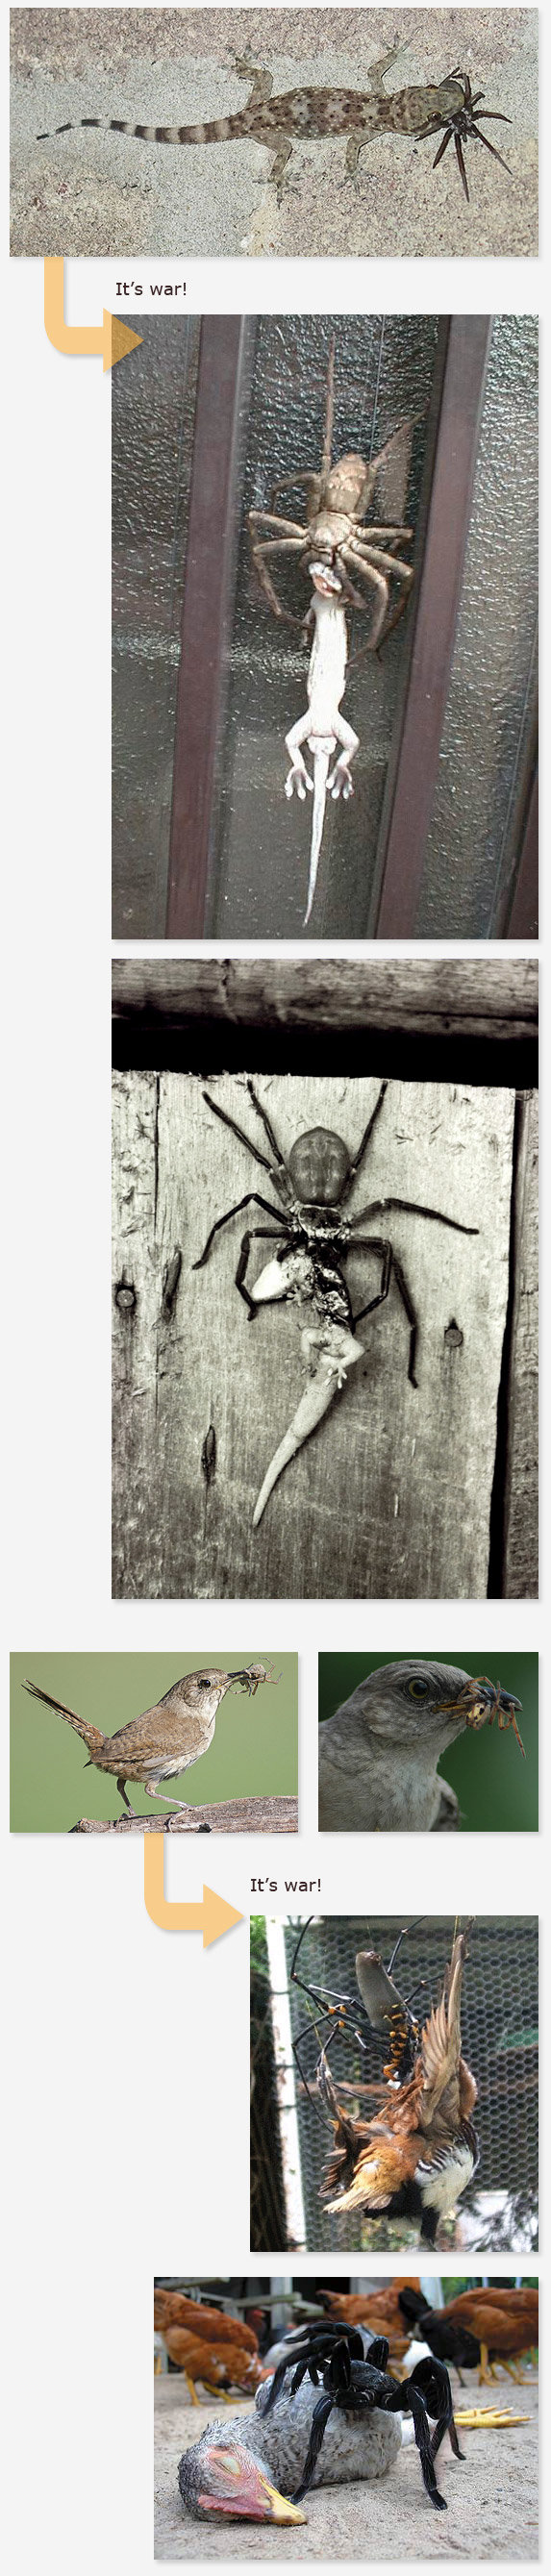 spiders - this is why you shouldn't mess with spiders